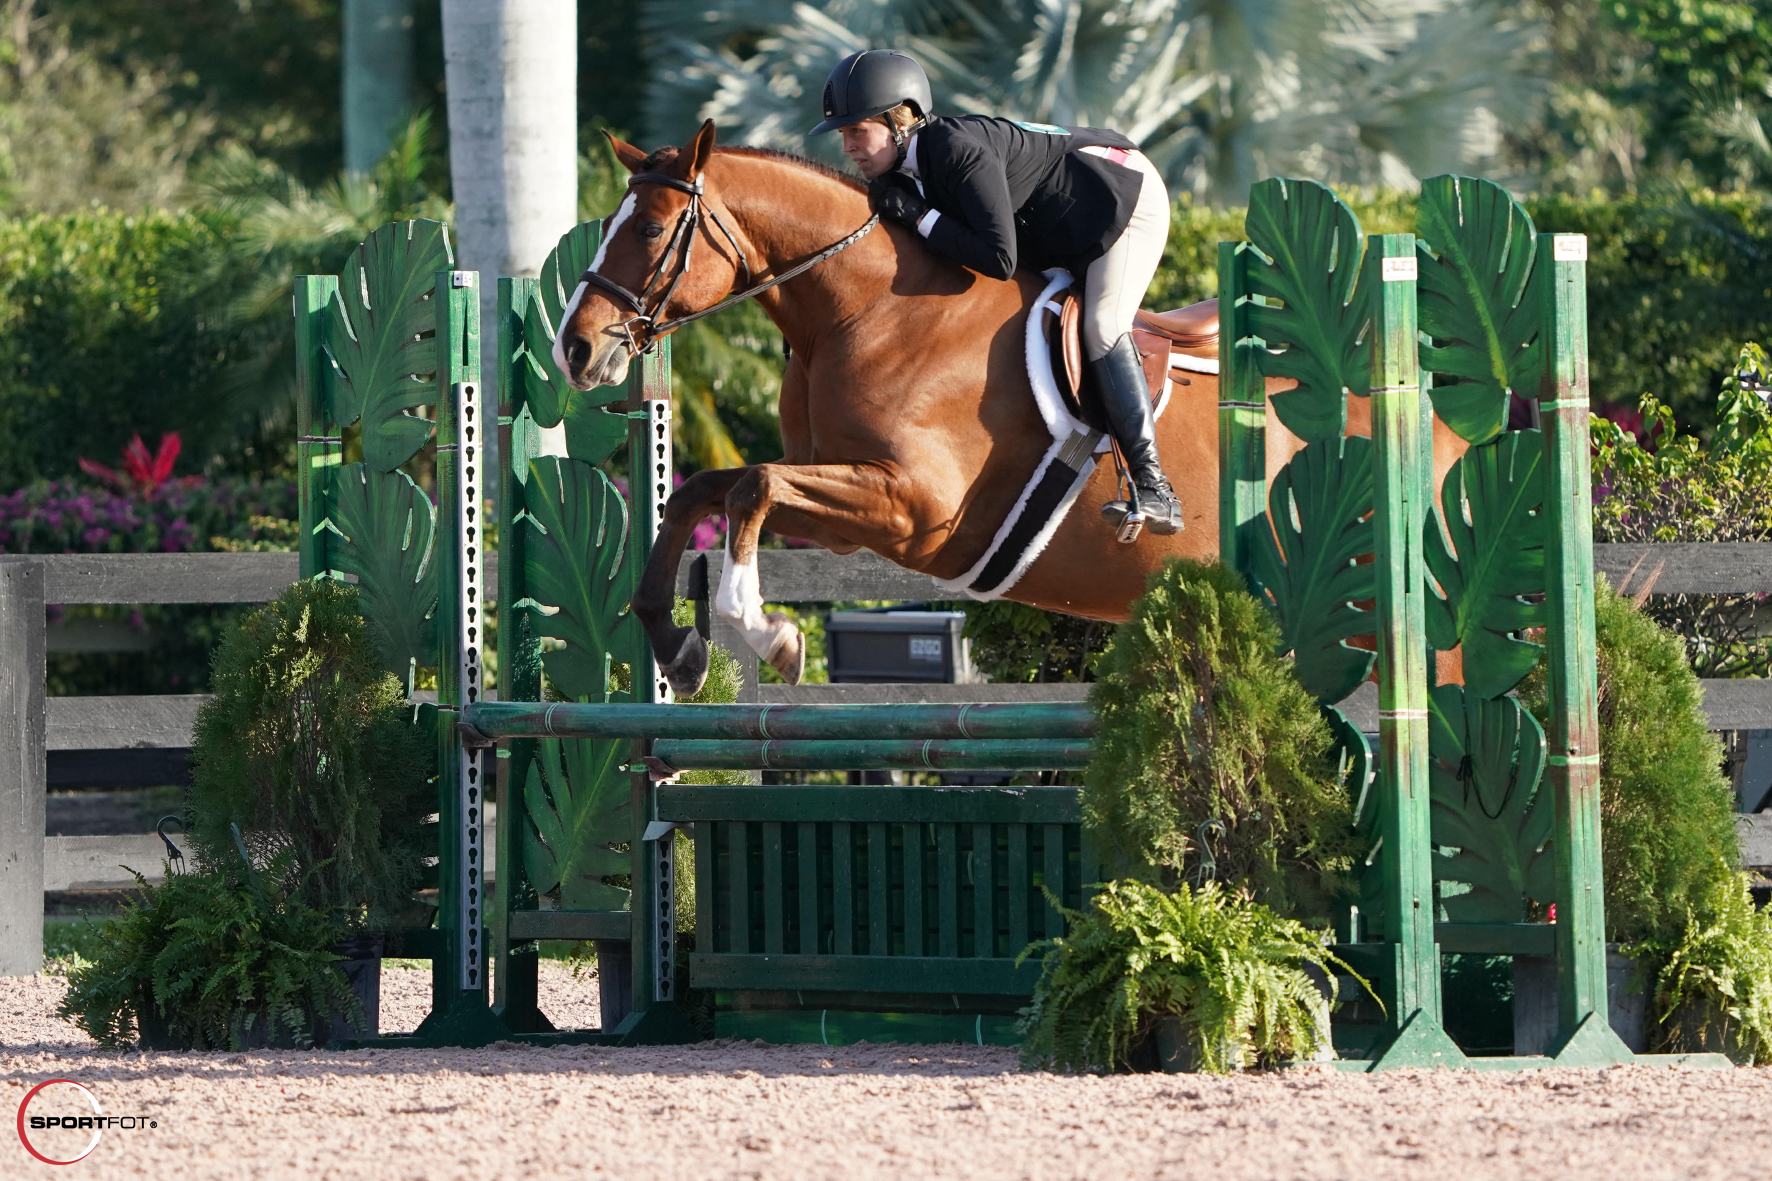 Tracy Scheriff-Muser and Bode Well by Sportfot 499_8365